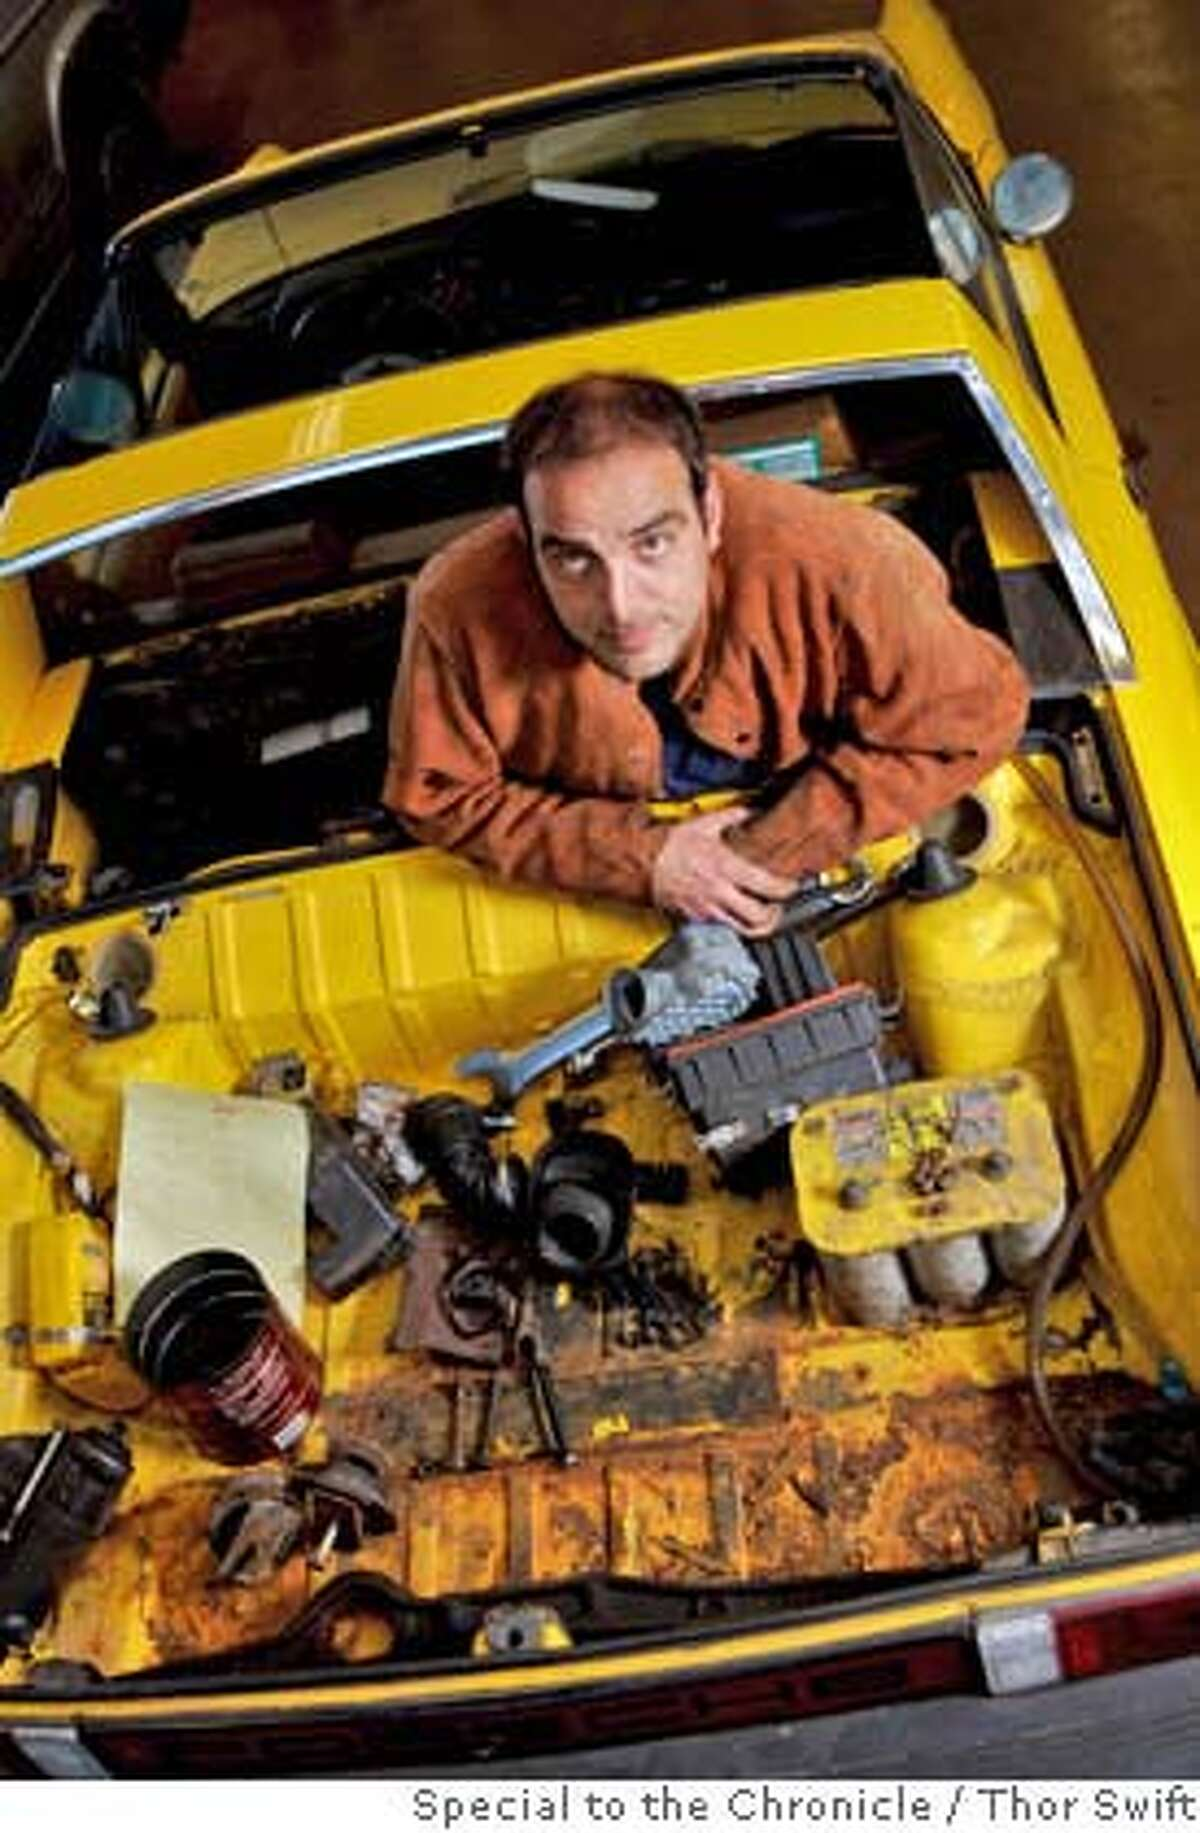 Mark Armstrong stands where the engine normally would go in a car he and his students are converting to a hydraulic-hybrid motor at a program on alternative fuels at Santa Rosa Community College, Monday, Dec. 10, 2007. The program works on various types of alternative fuels for automobiles, from electric to re-used cooking oil. They are hoping this car will get over 100 MPG when the system is working. Thor Swift For The San Francisco Chronicle